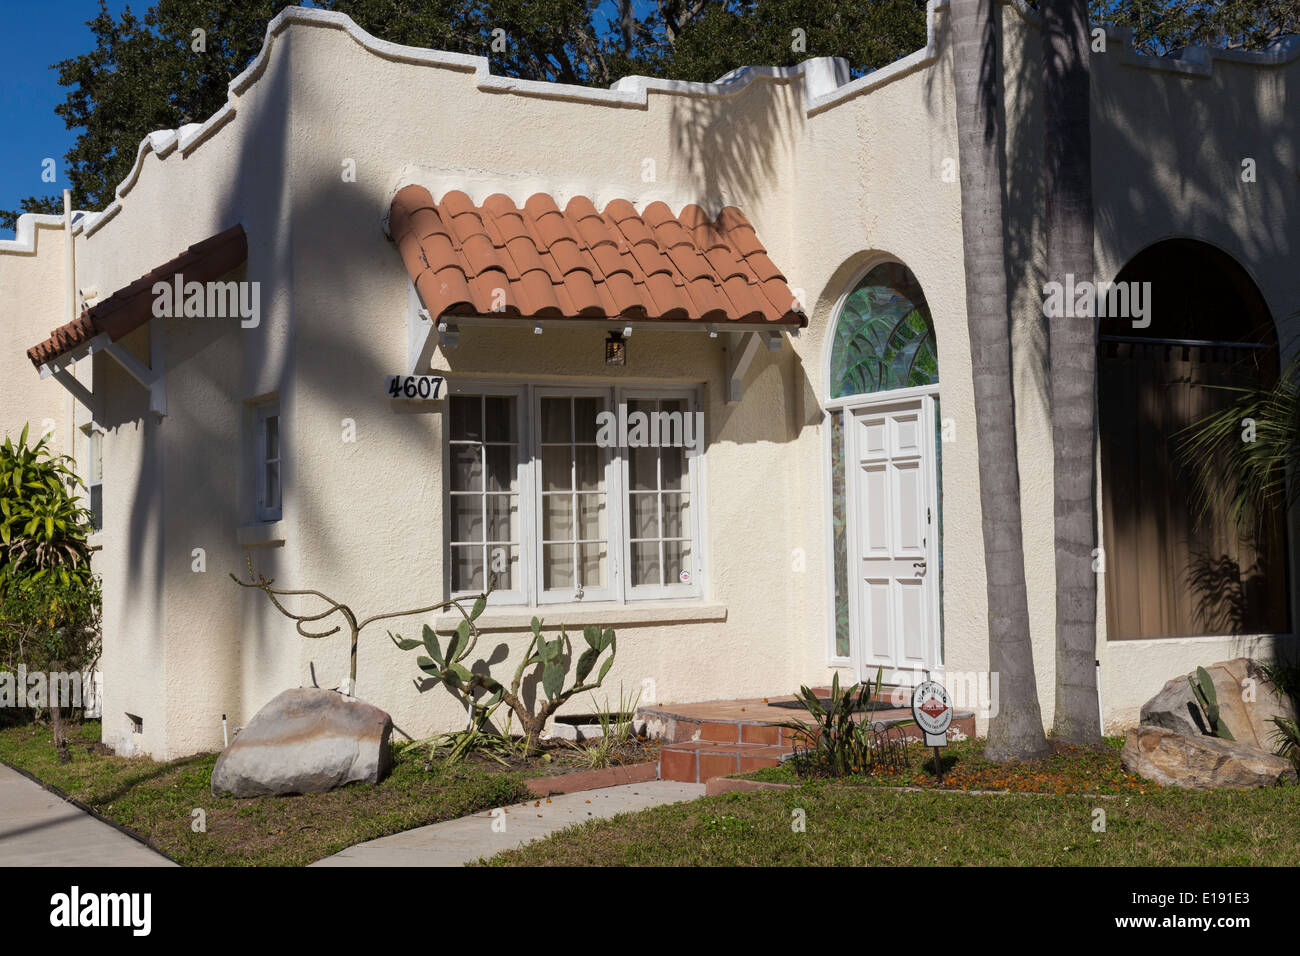 1930's Style Florida Bungalow and Tropical Landscaping, Residential Neighborhood Tampa, FL, USA - Stock Image